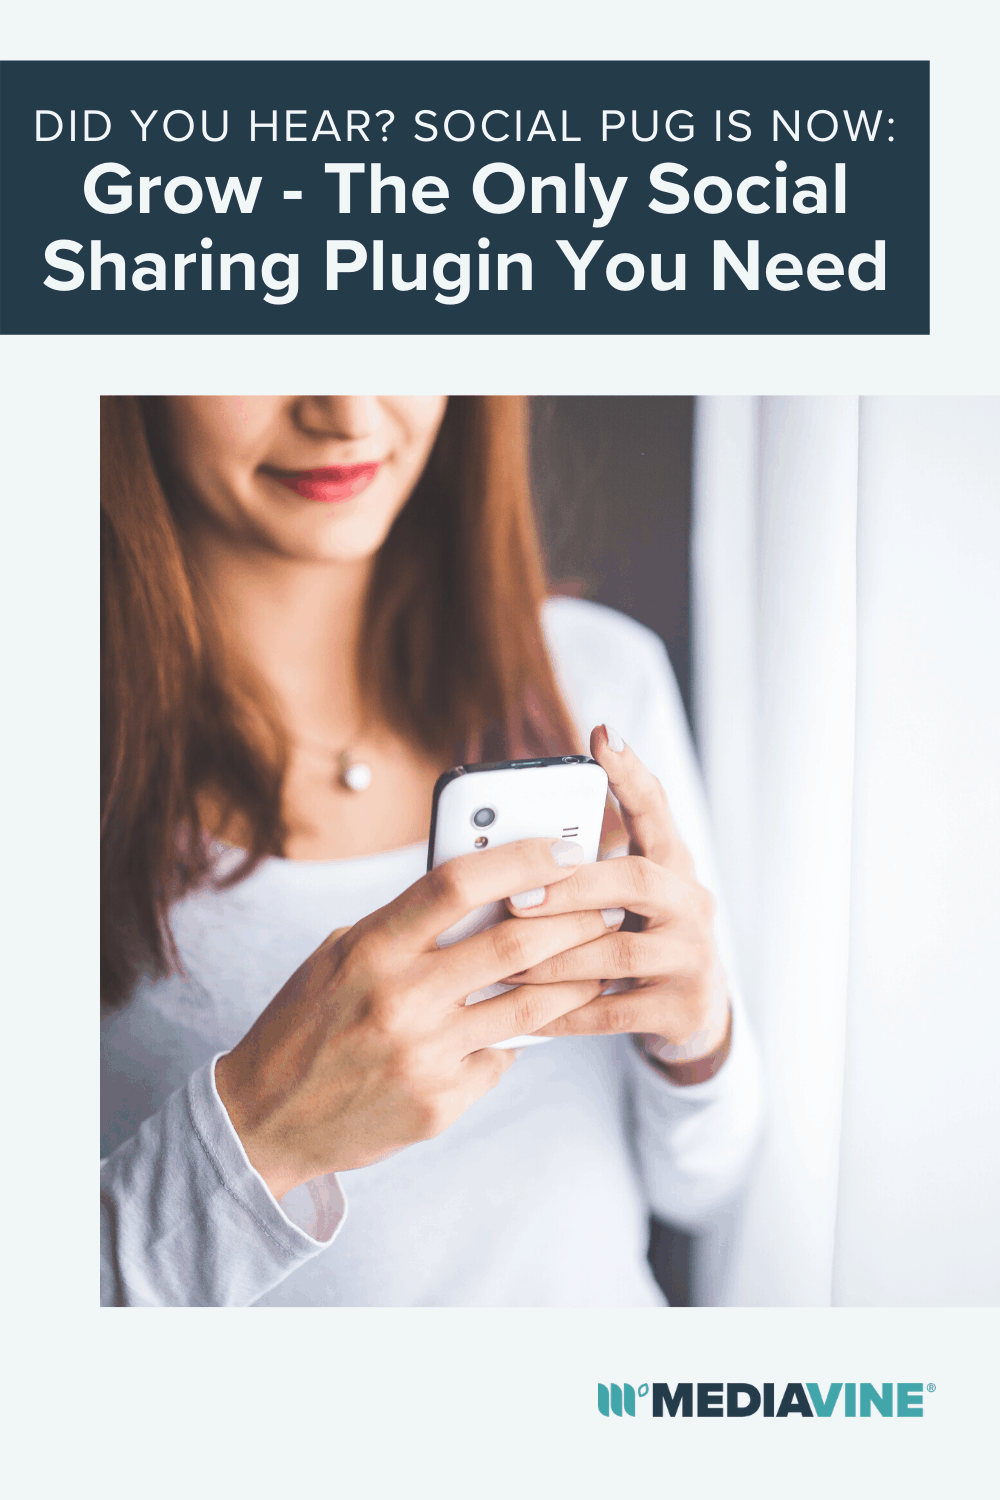 Mediavine Pinterest image - Did you hear? Social Pug is now: Grow - The only Social Sharing plugin you need